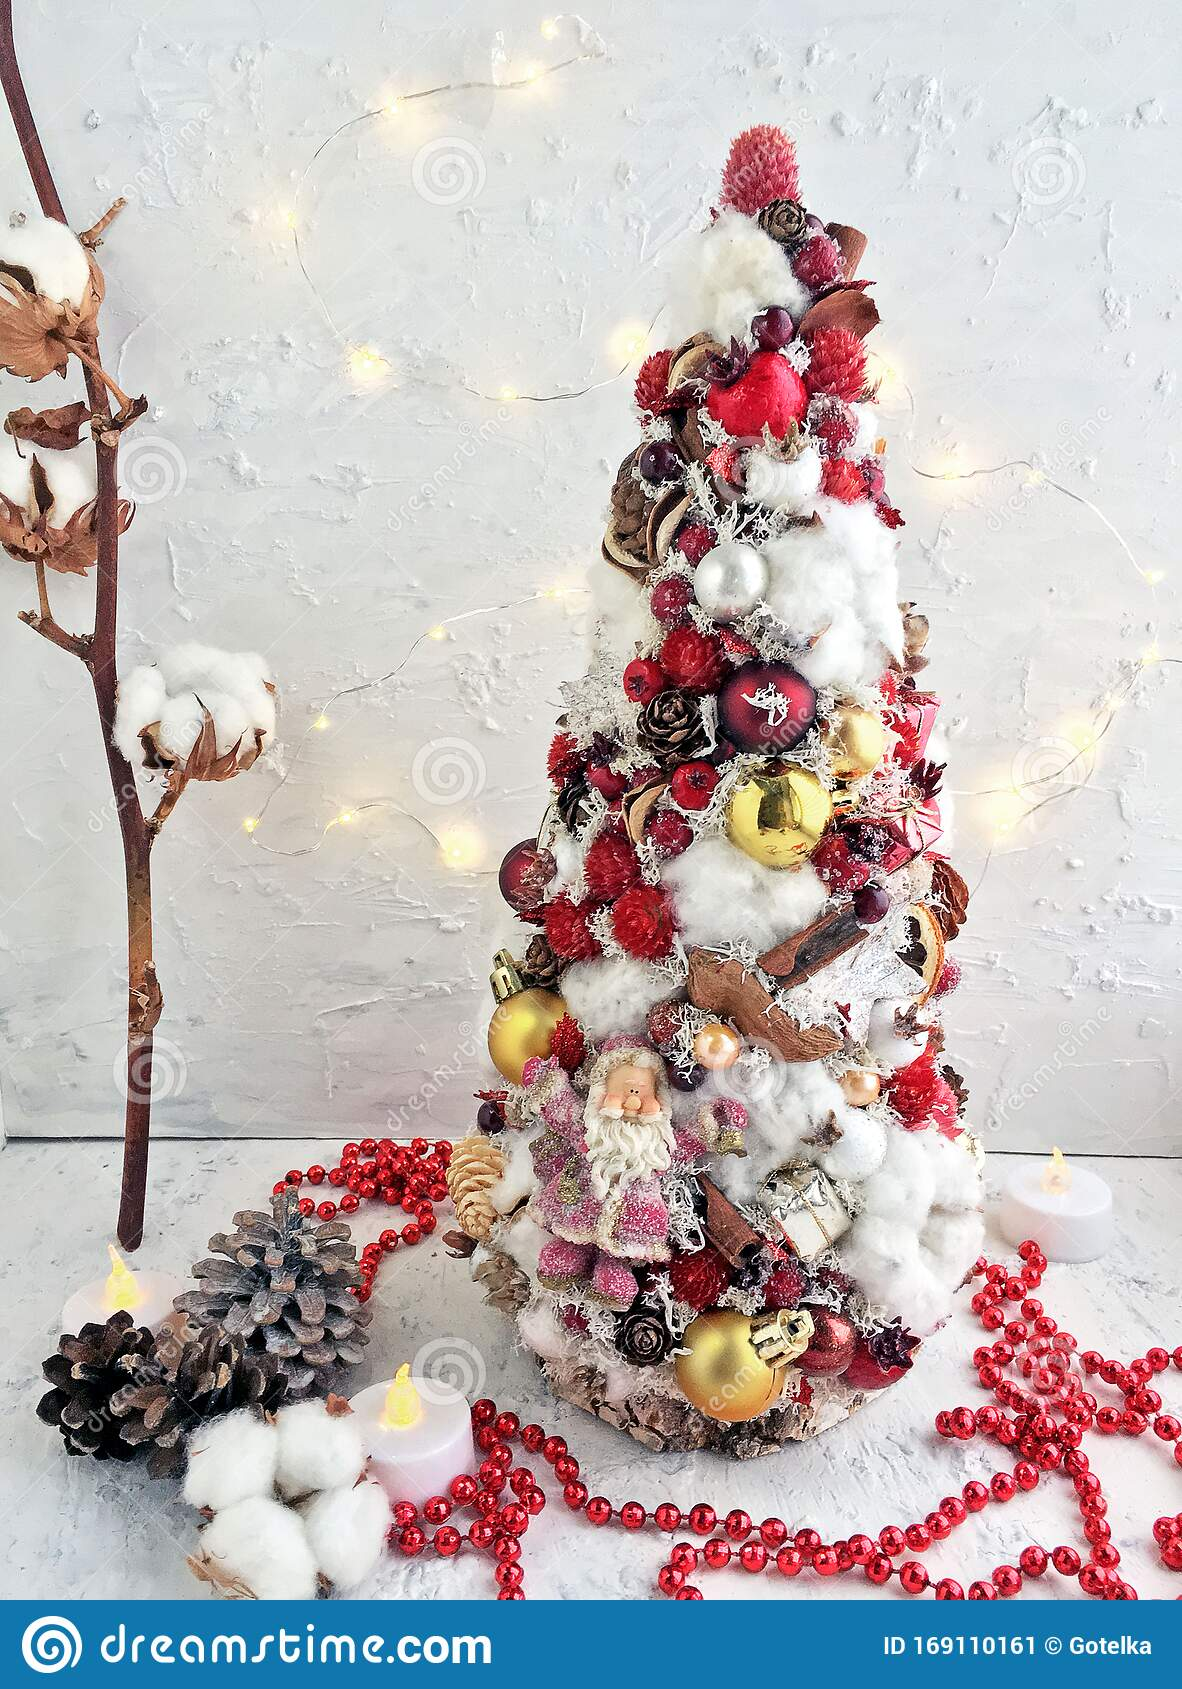 Creative Christmas Tree Handmade An Unusual Idea For A Holiday Home Decor White Red And Gold Christmas Tree Decor In Macro Stock Image Image Of Homemade Idea 169110161